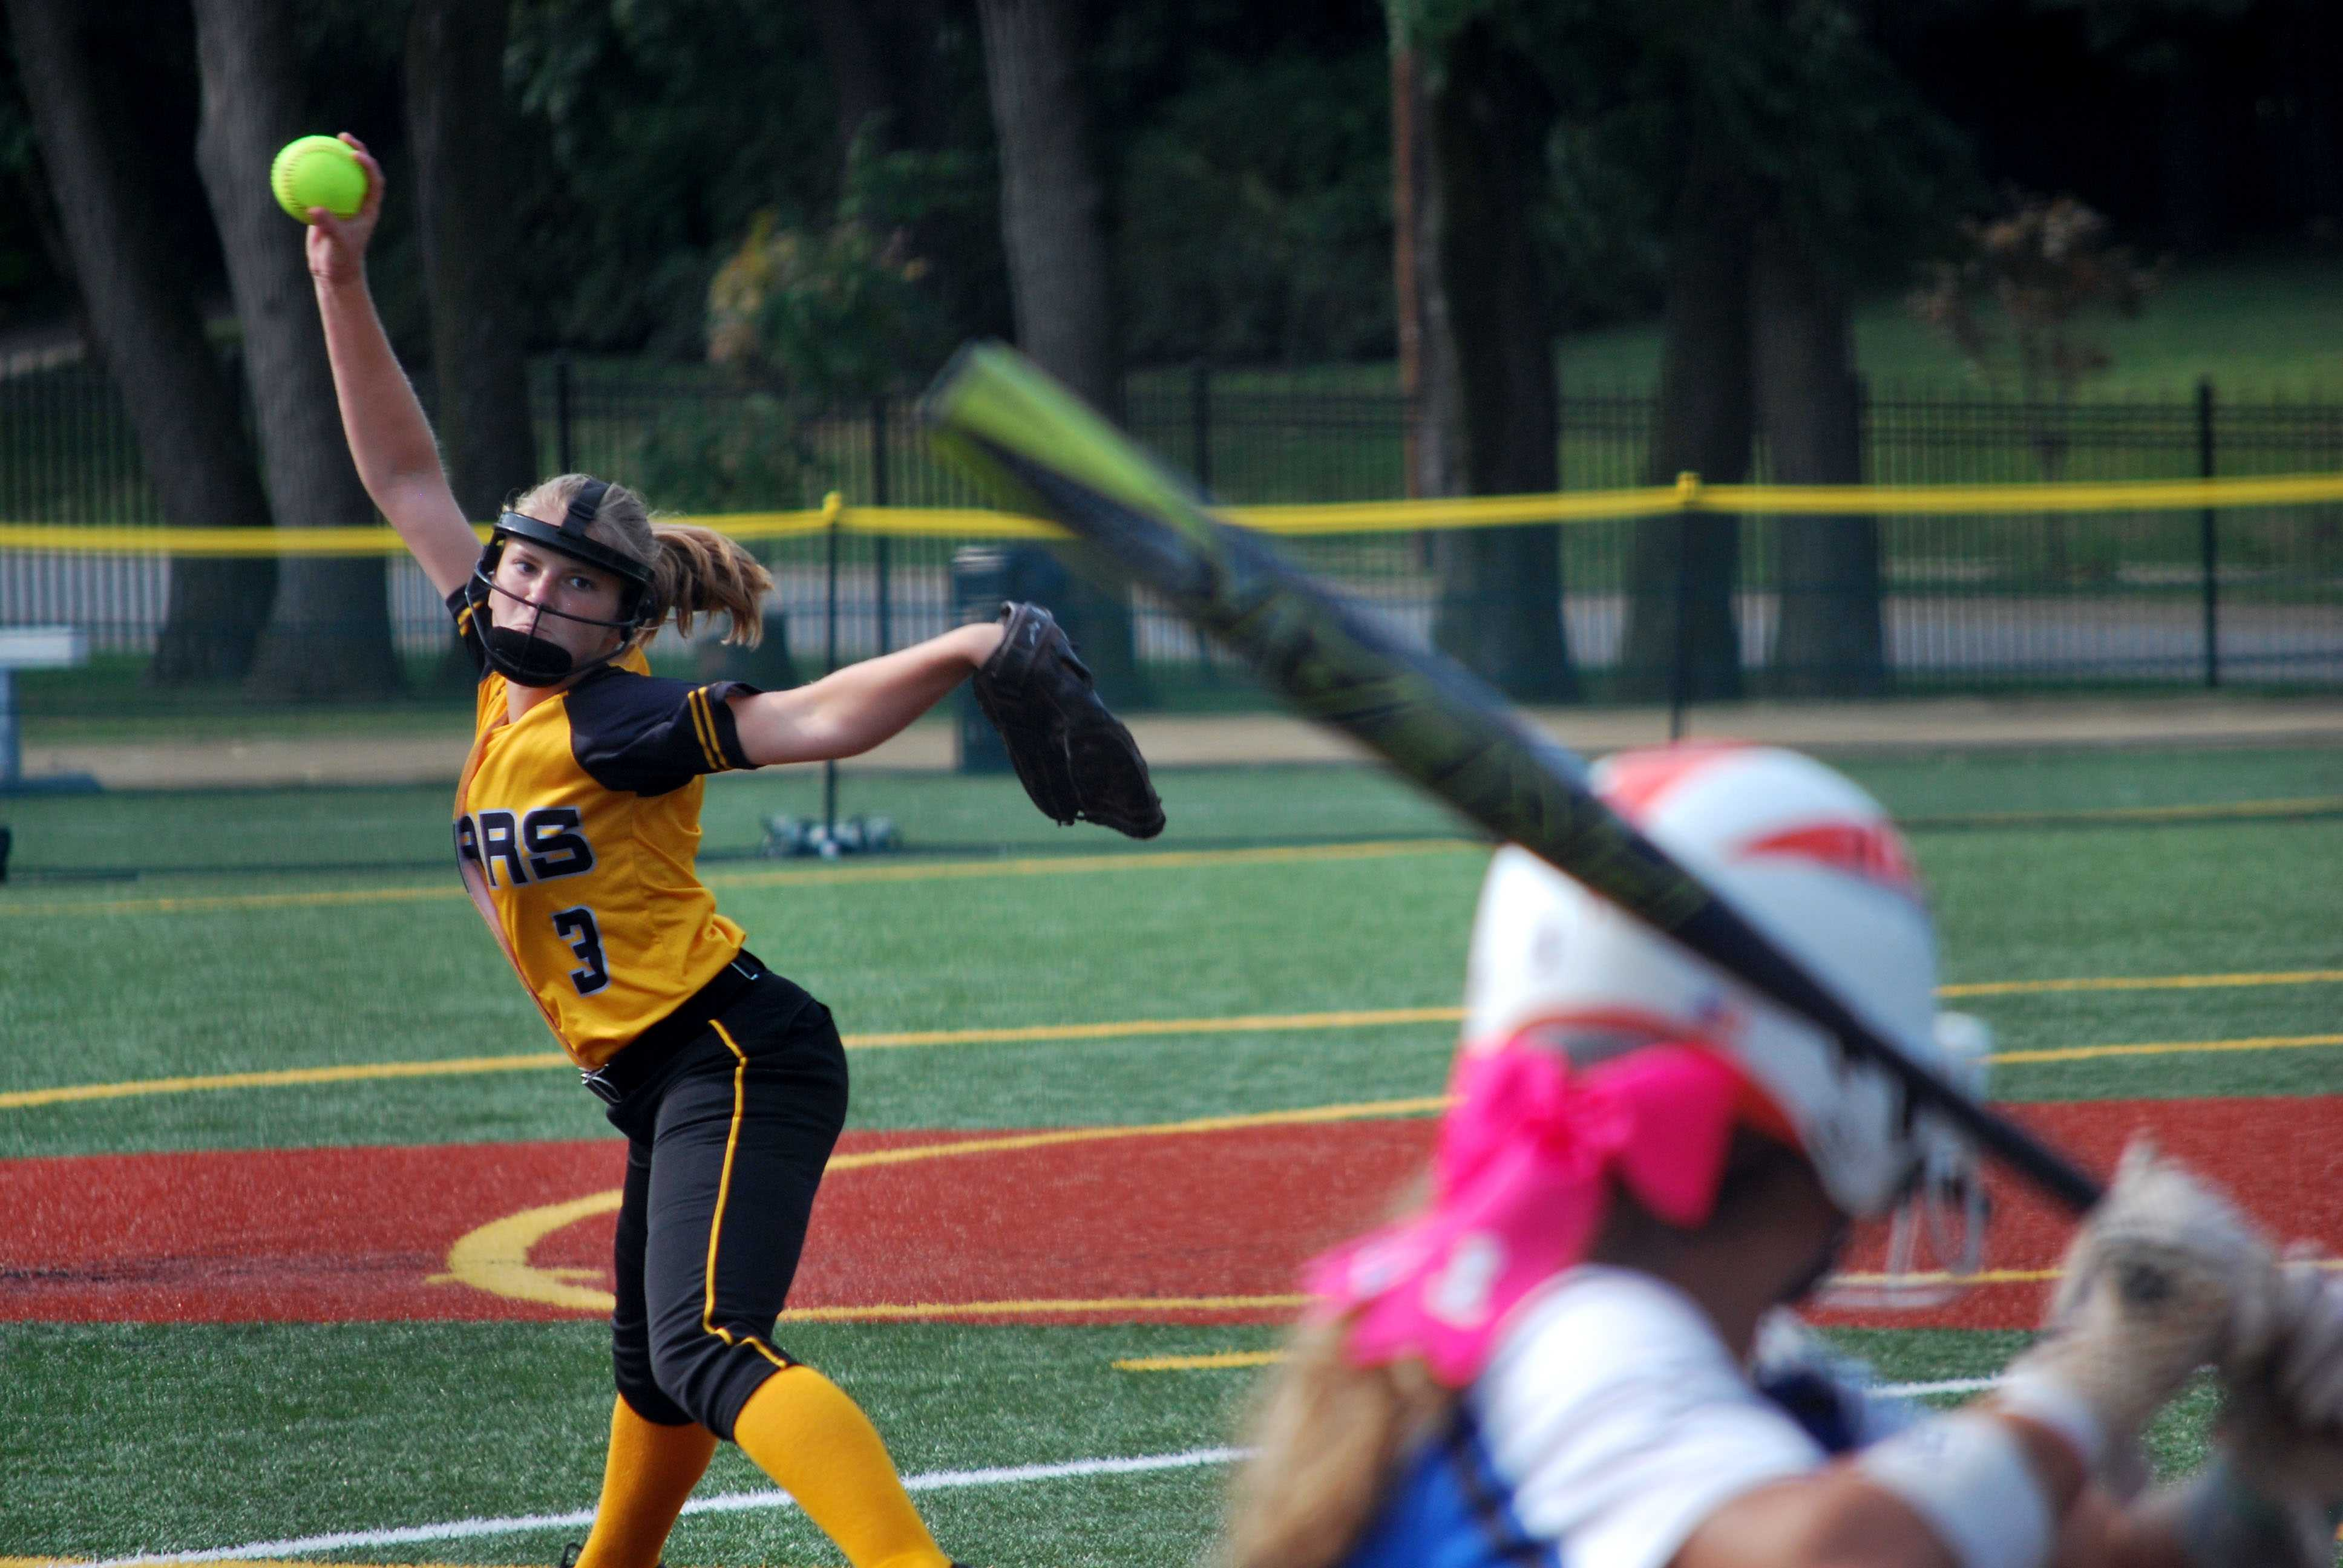 Senior Maddie Watts throws a pitch in the game against St. Joseph Central Aug. 27. photo by Libby Hutchinson